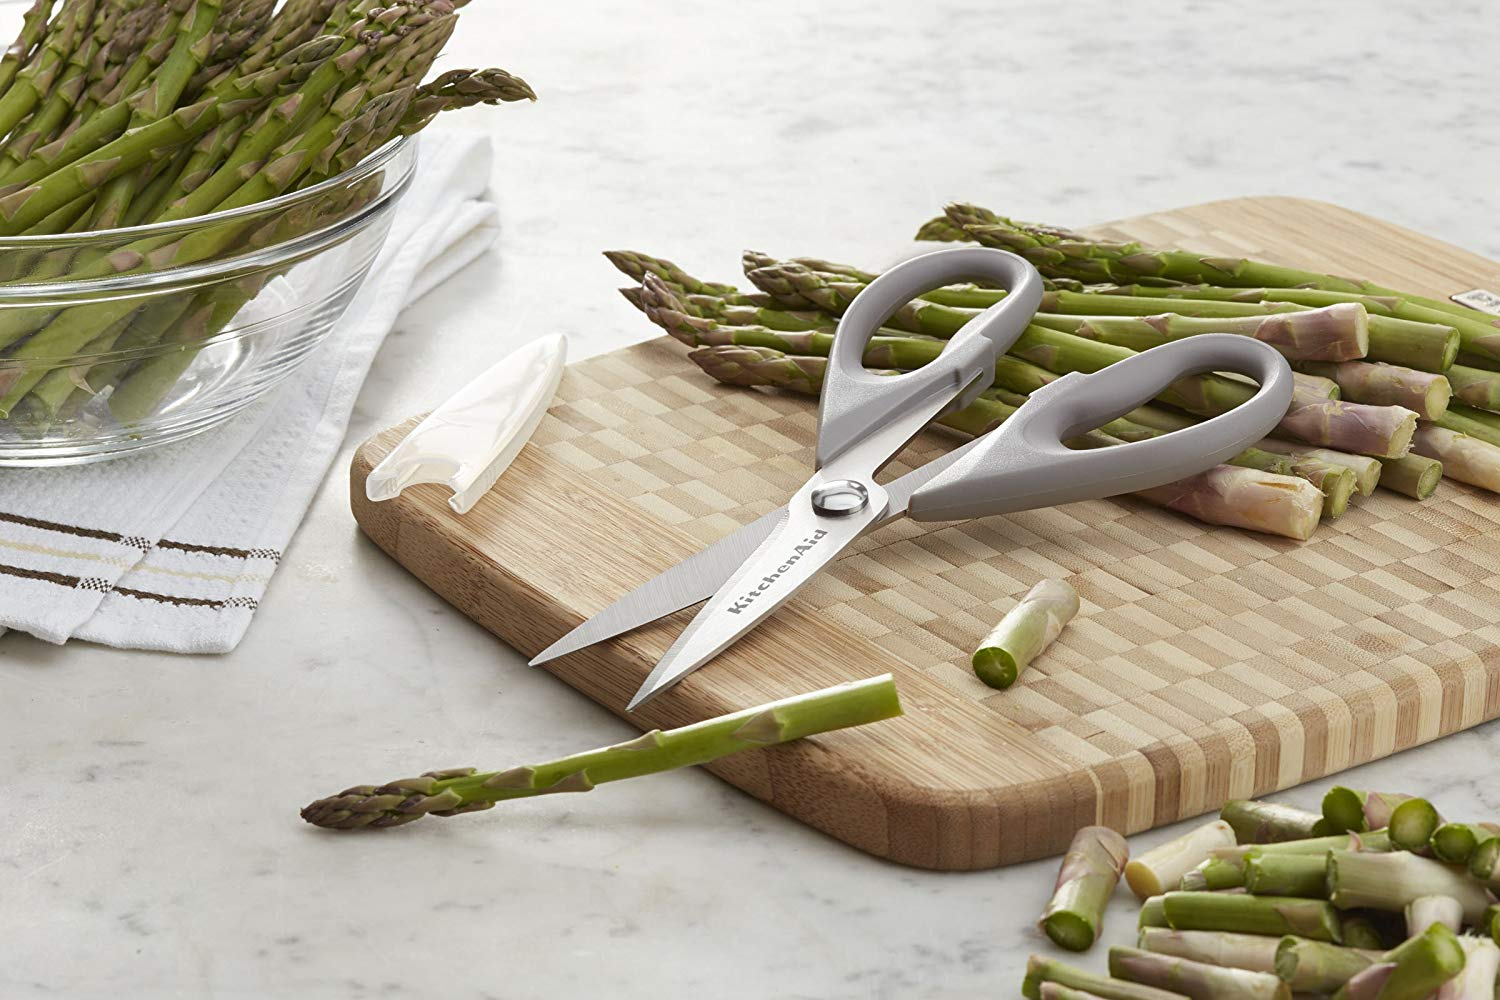 cutting board with asparagus and scissors